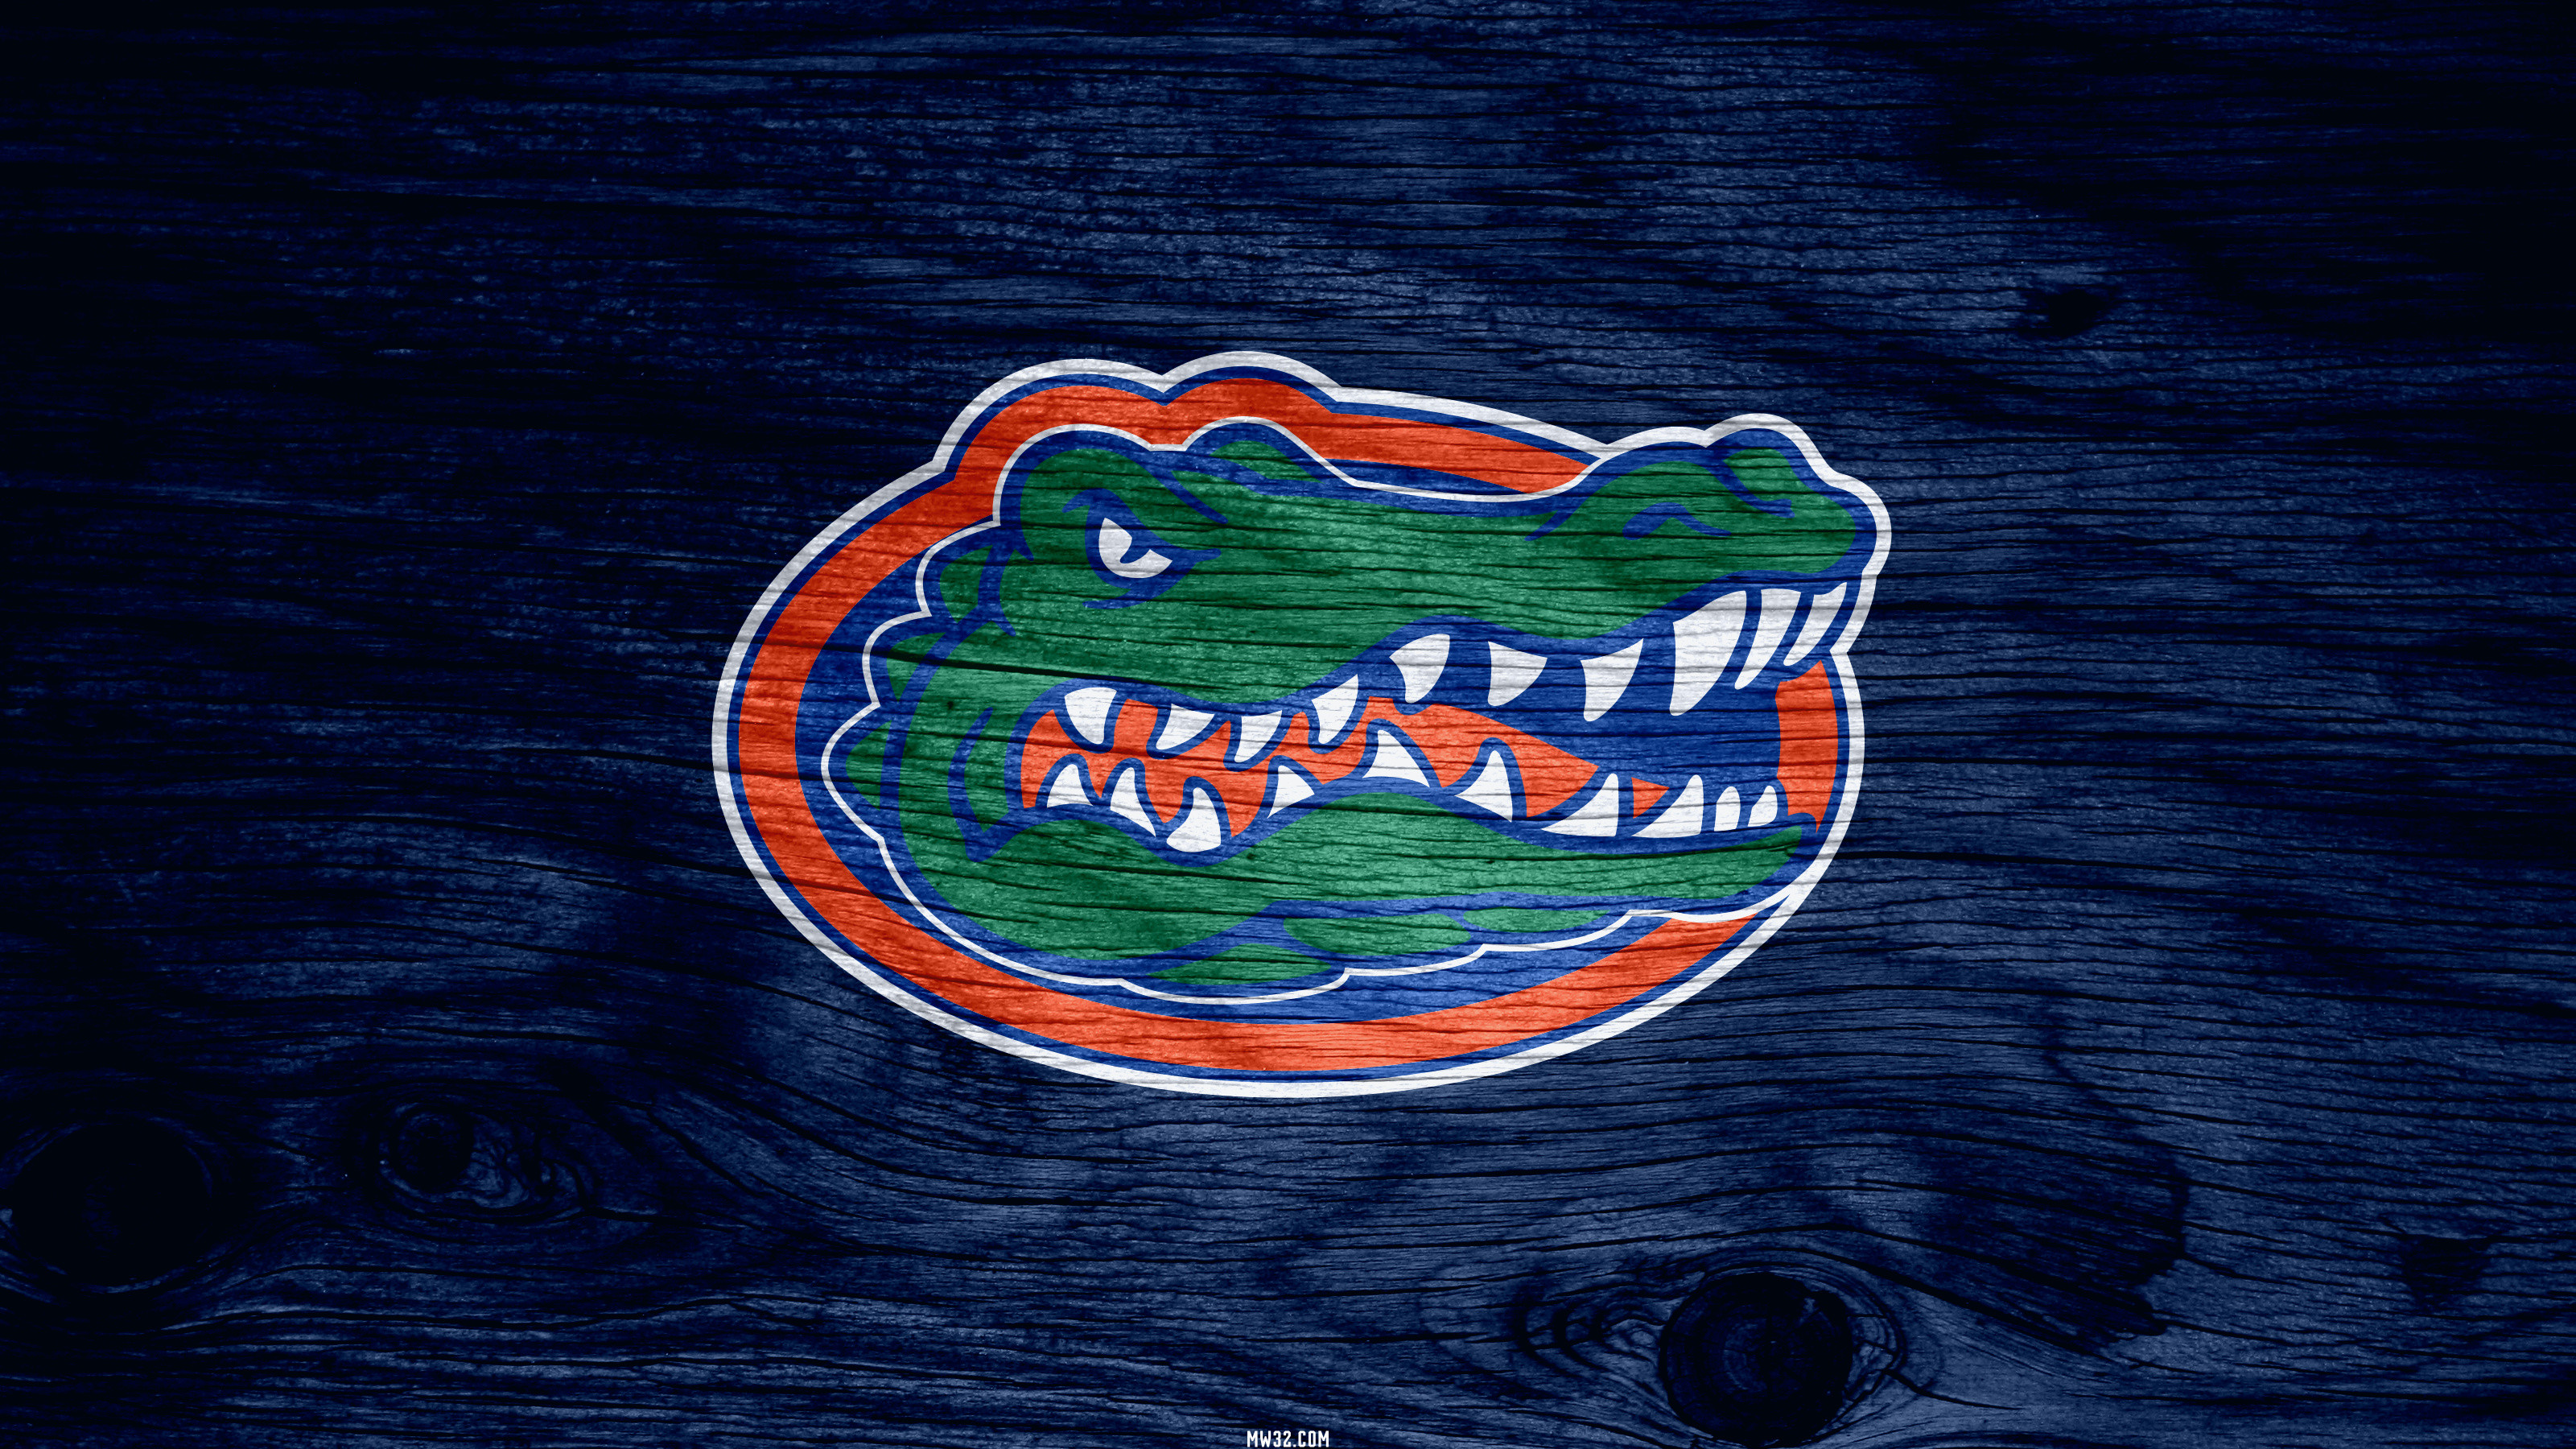 Florida Gators Wallpaper and Screensavers - WallpaperSafari